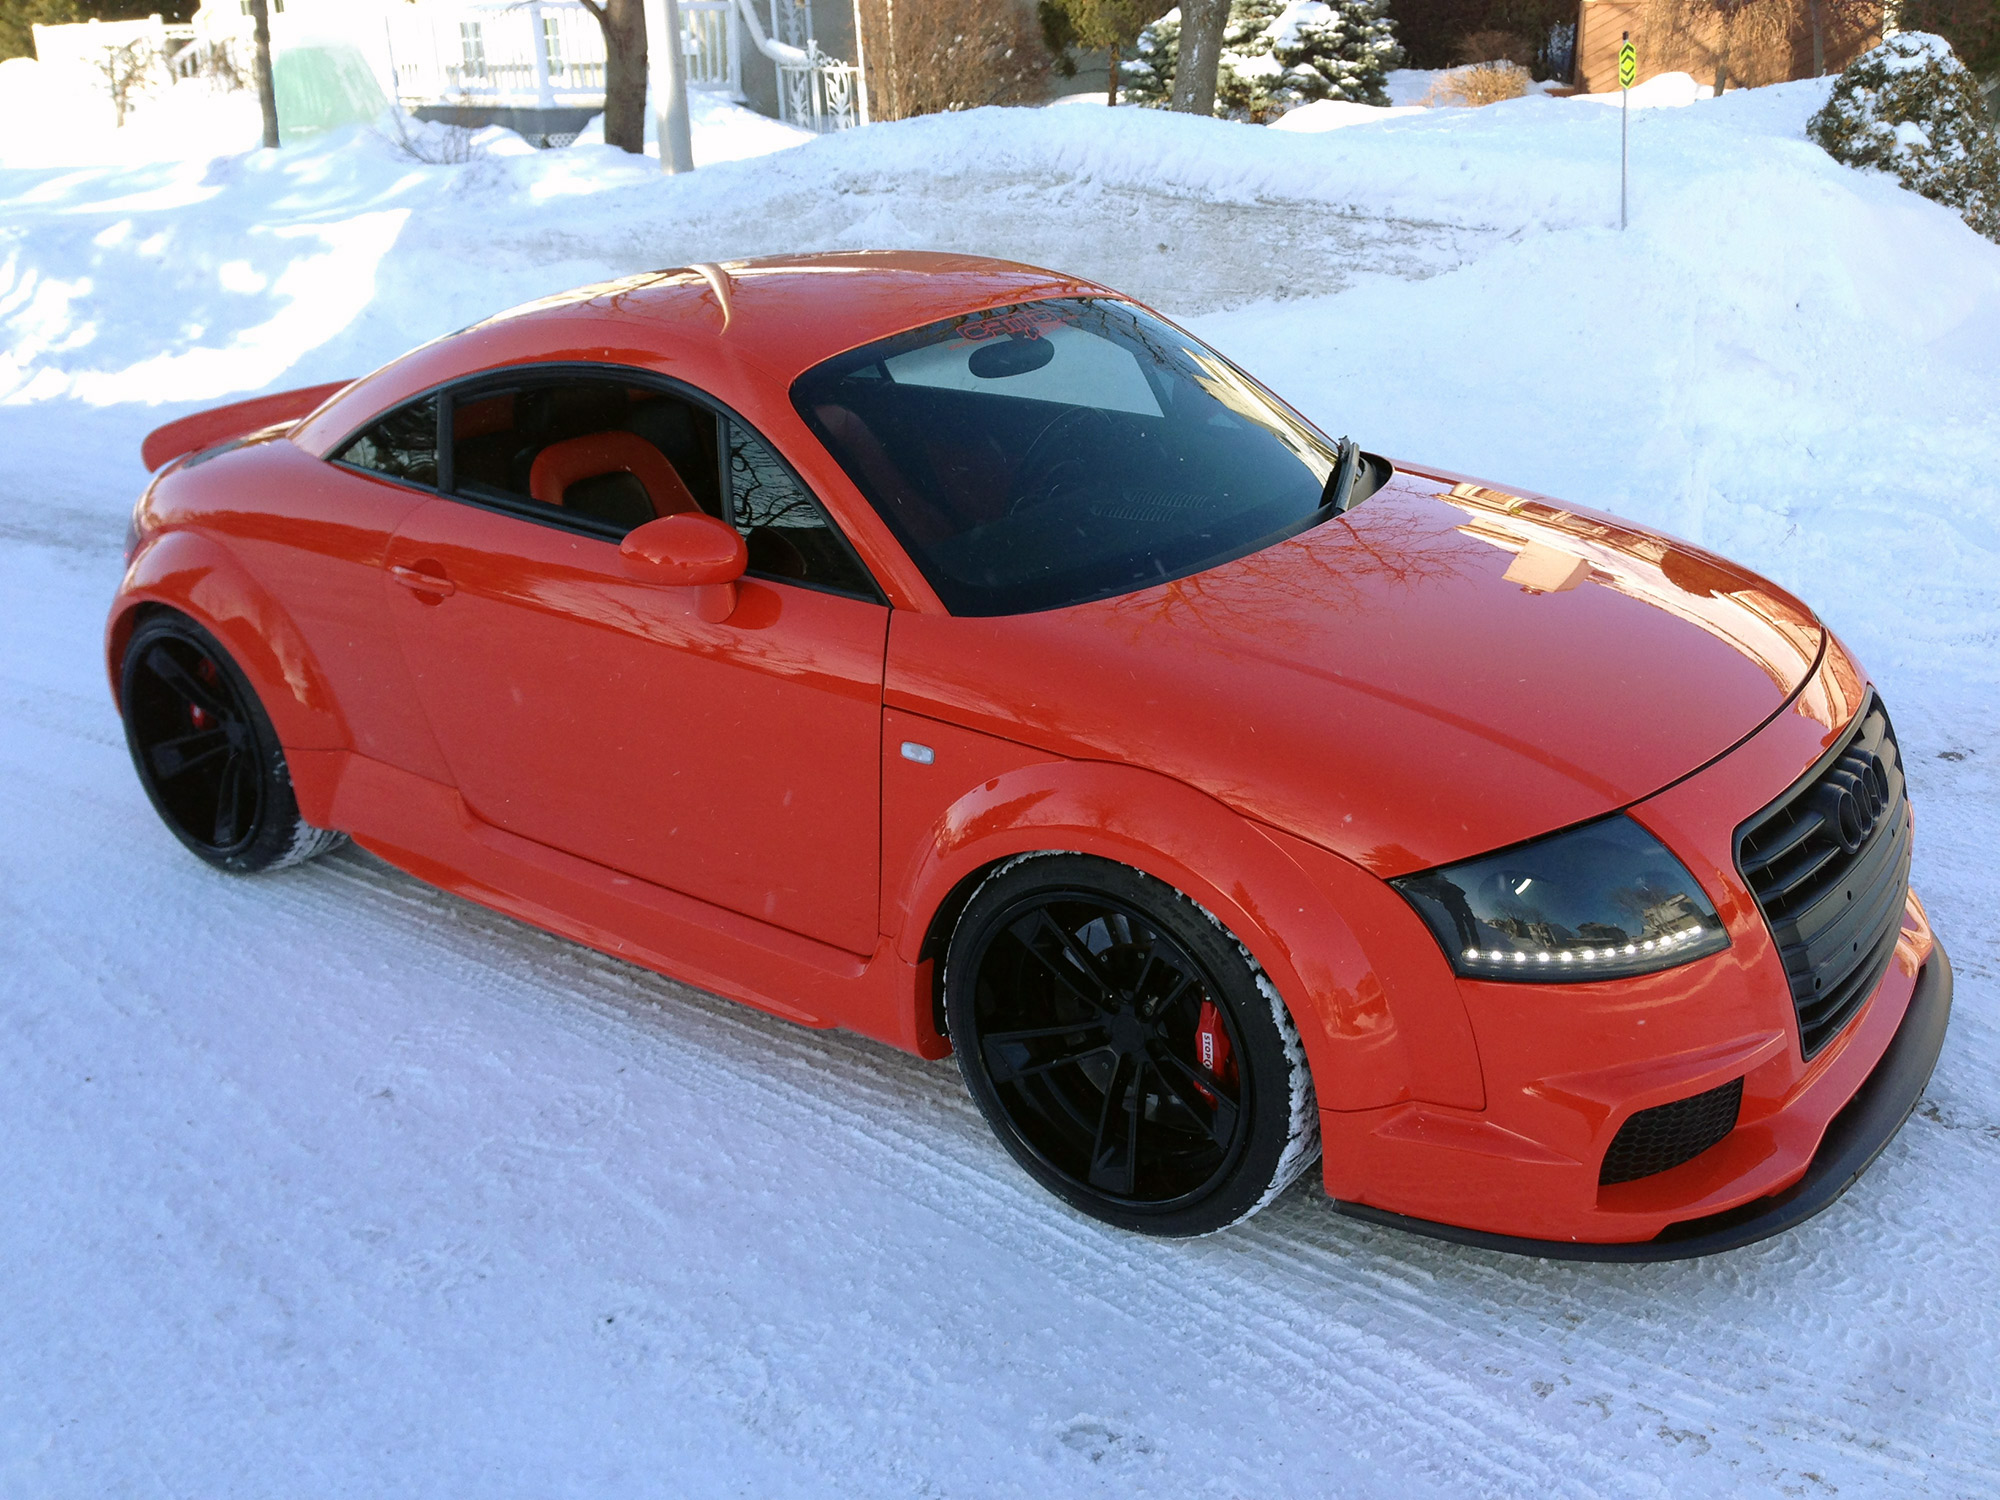 Audi Tt Tuning In Snow 1 Audi Tt Mk1 8n Tuning Parts